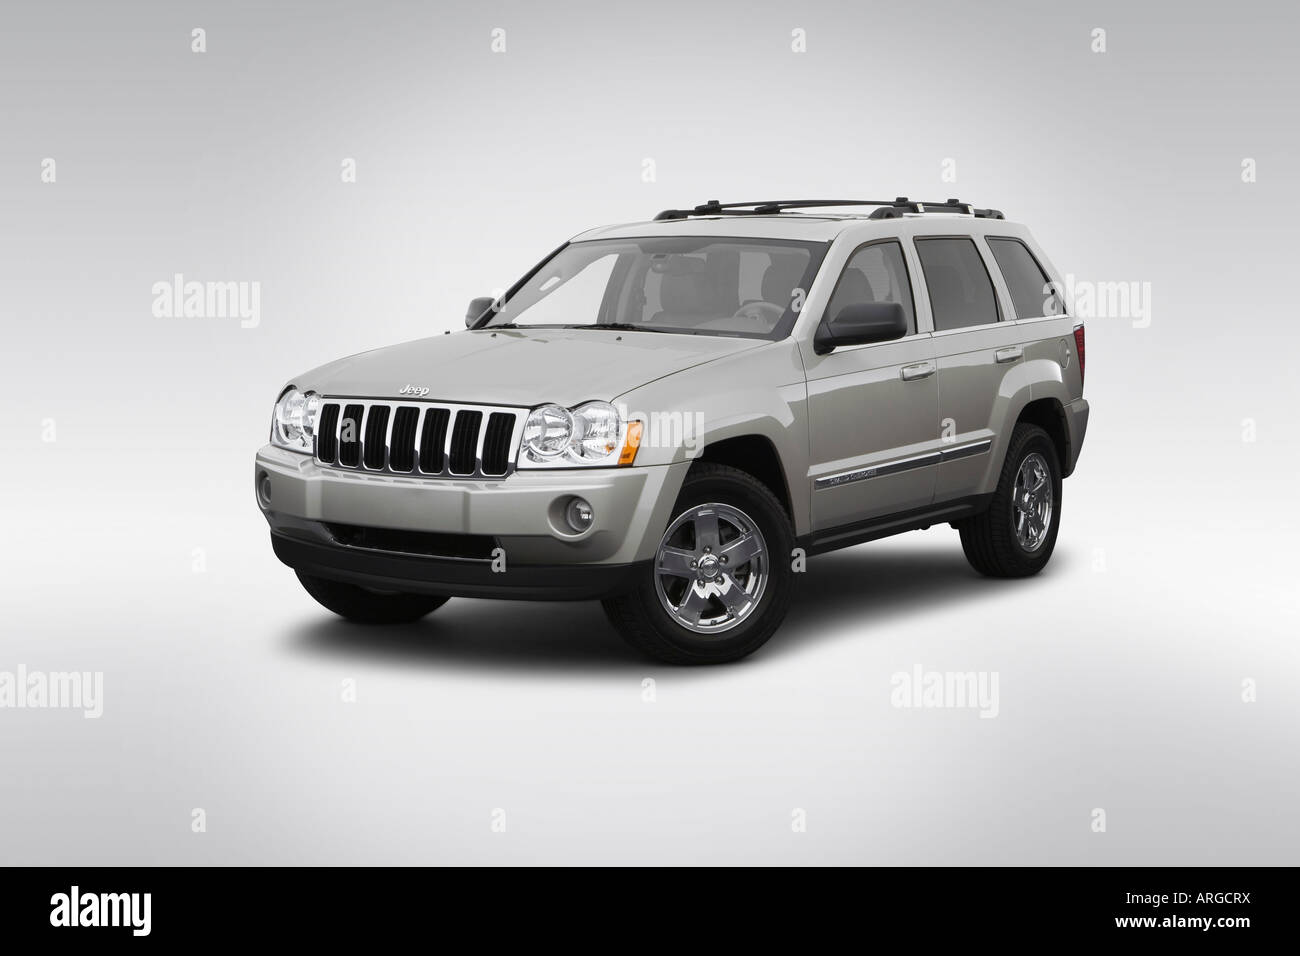 2007 jeep grand cherokee limited in gray front angle view stock photo royalty free image. Black Bedroom Furniture Sets. Home Design Ideas